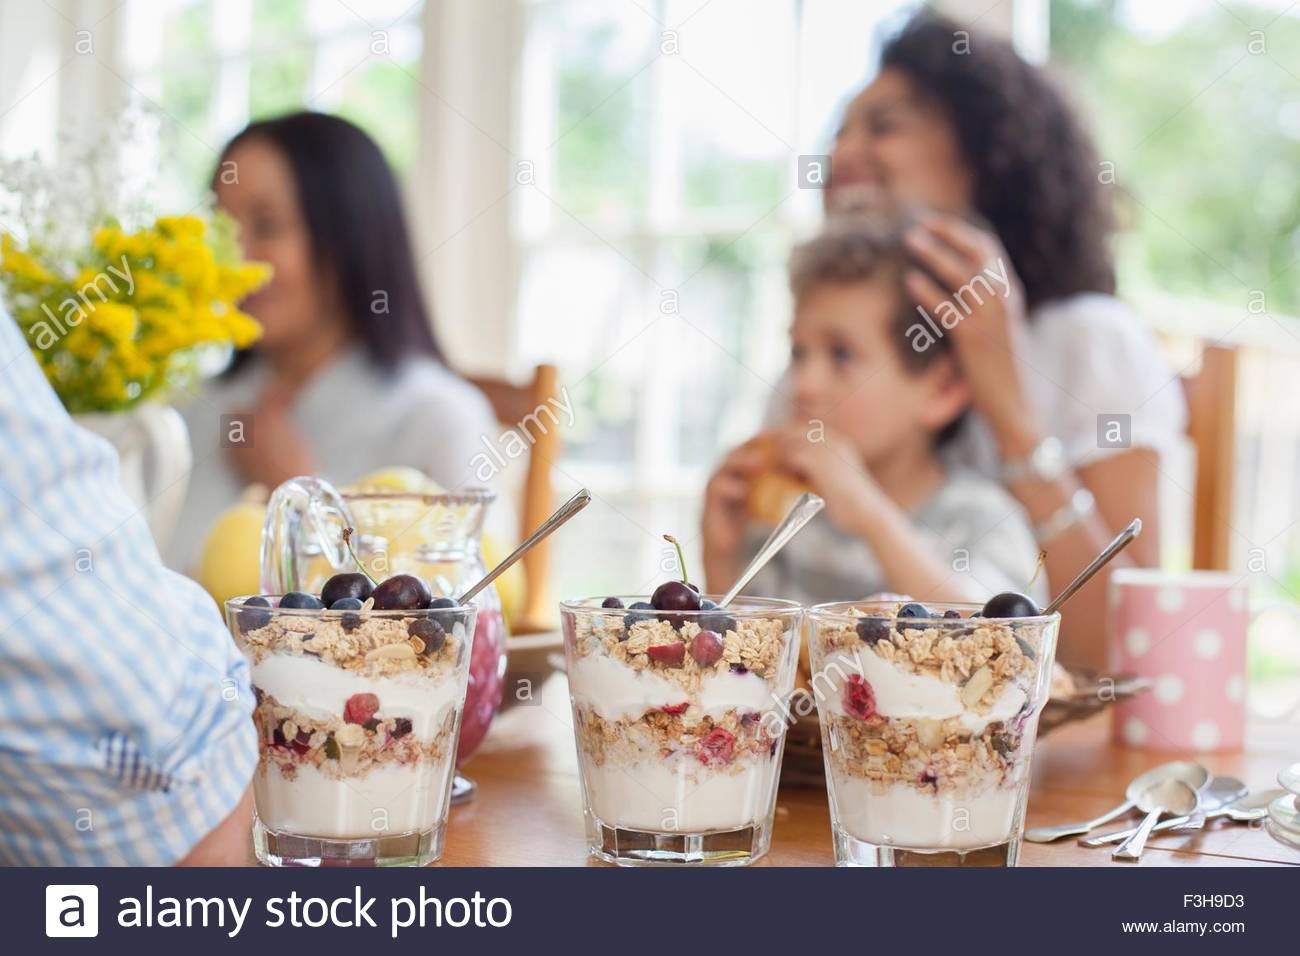 Family enjoying meal together, focus on desserts in foreground - Stock Image